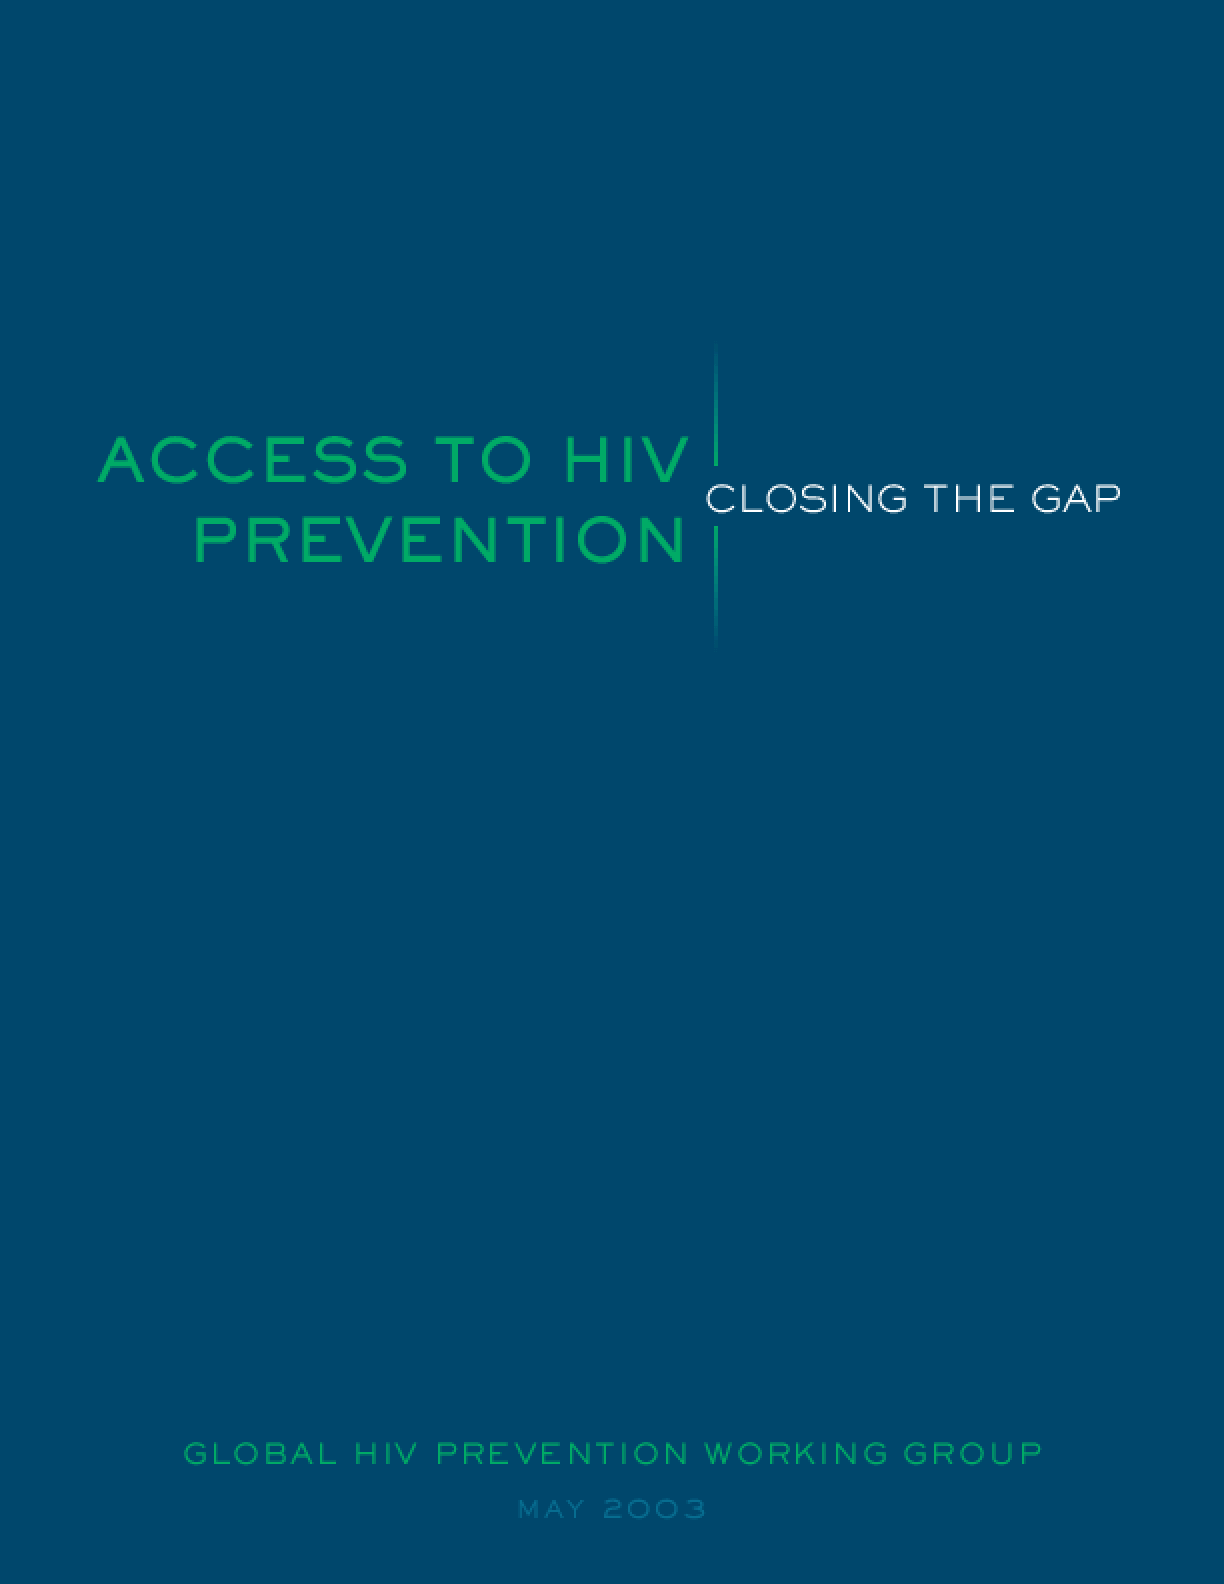 Access to HIV Prevention: Closing the Gap